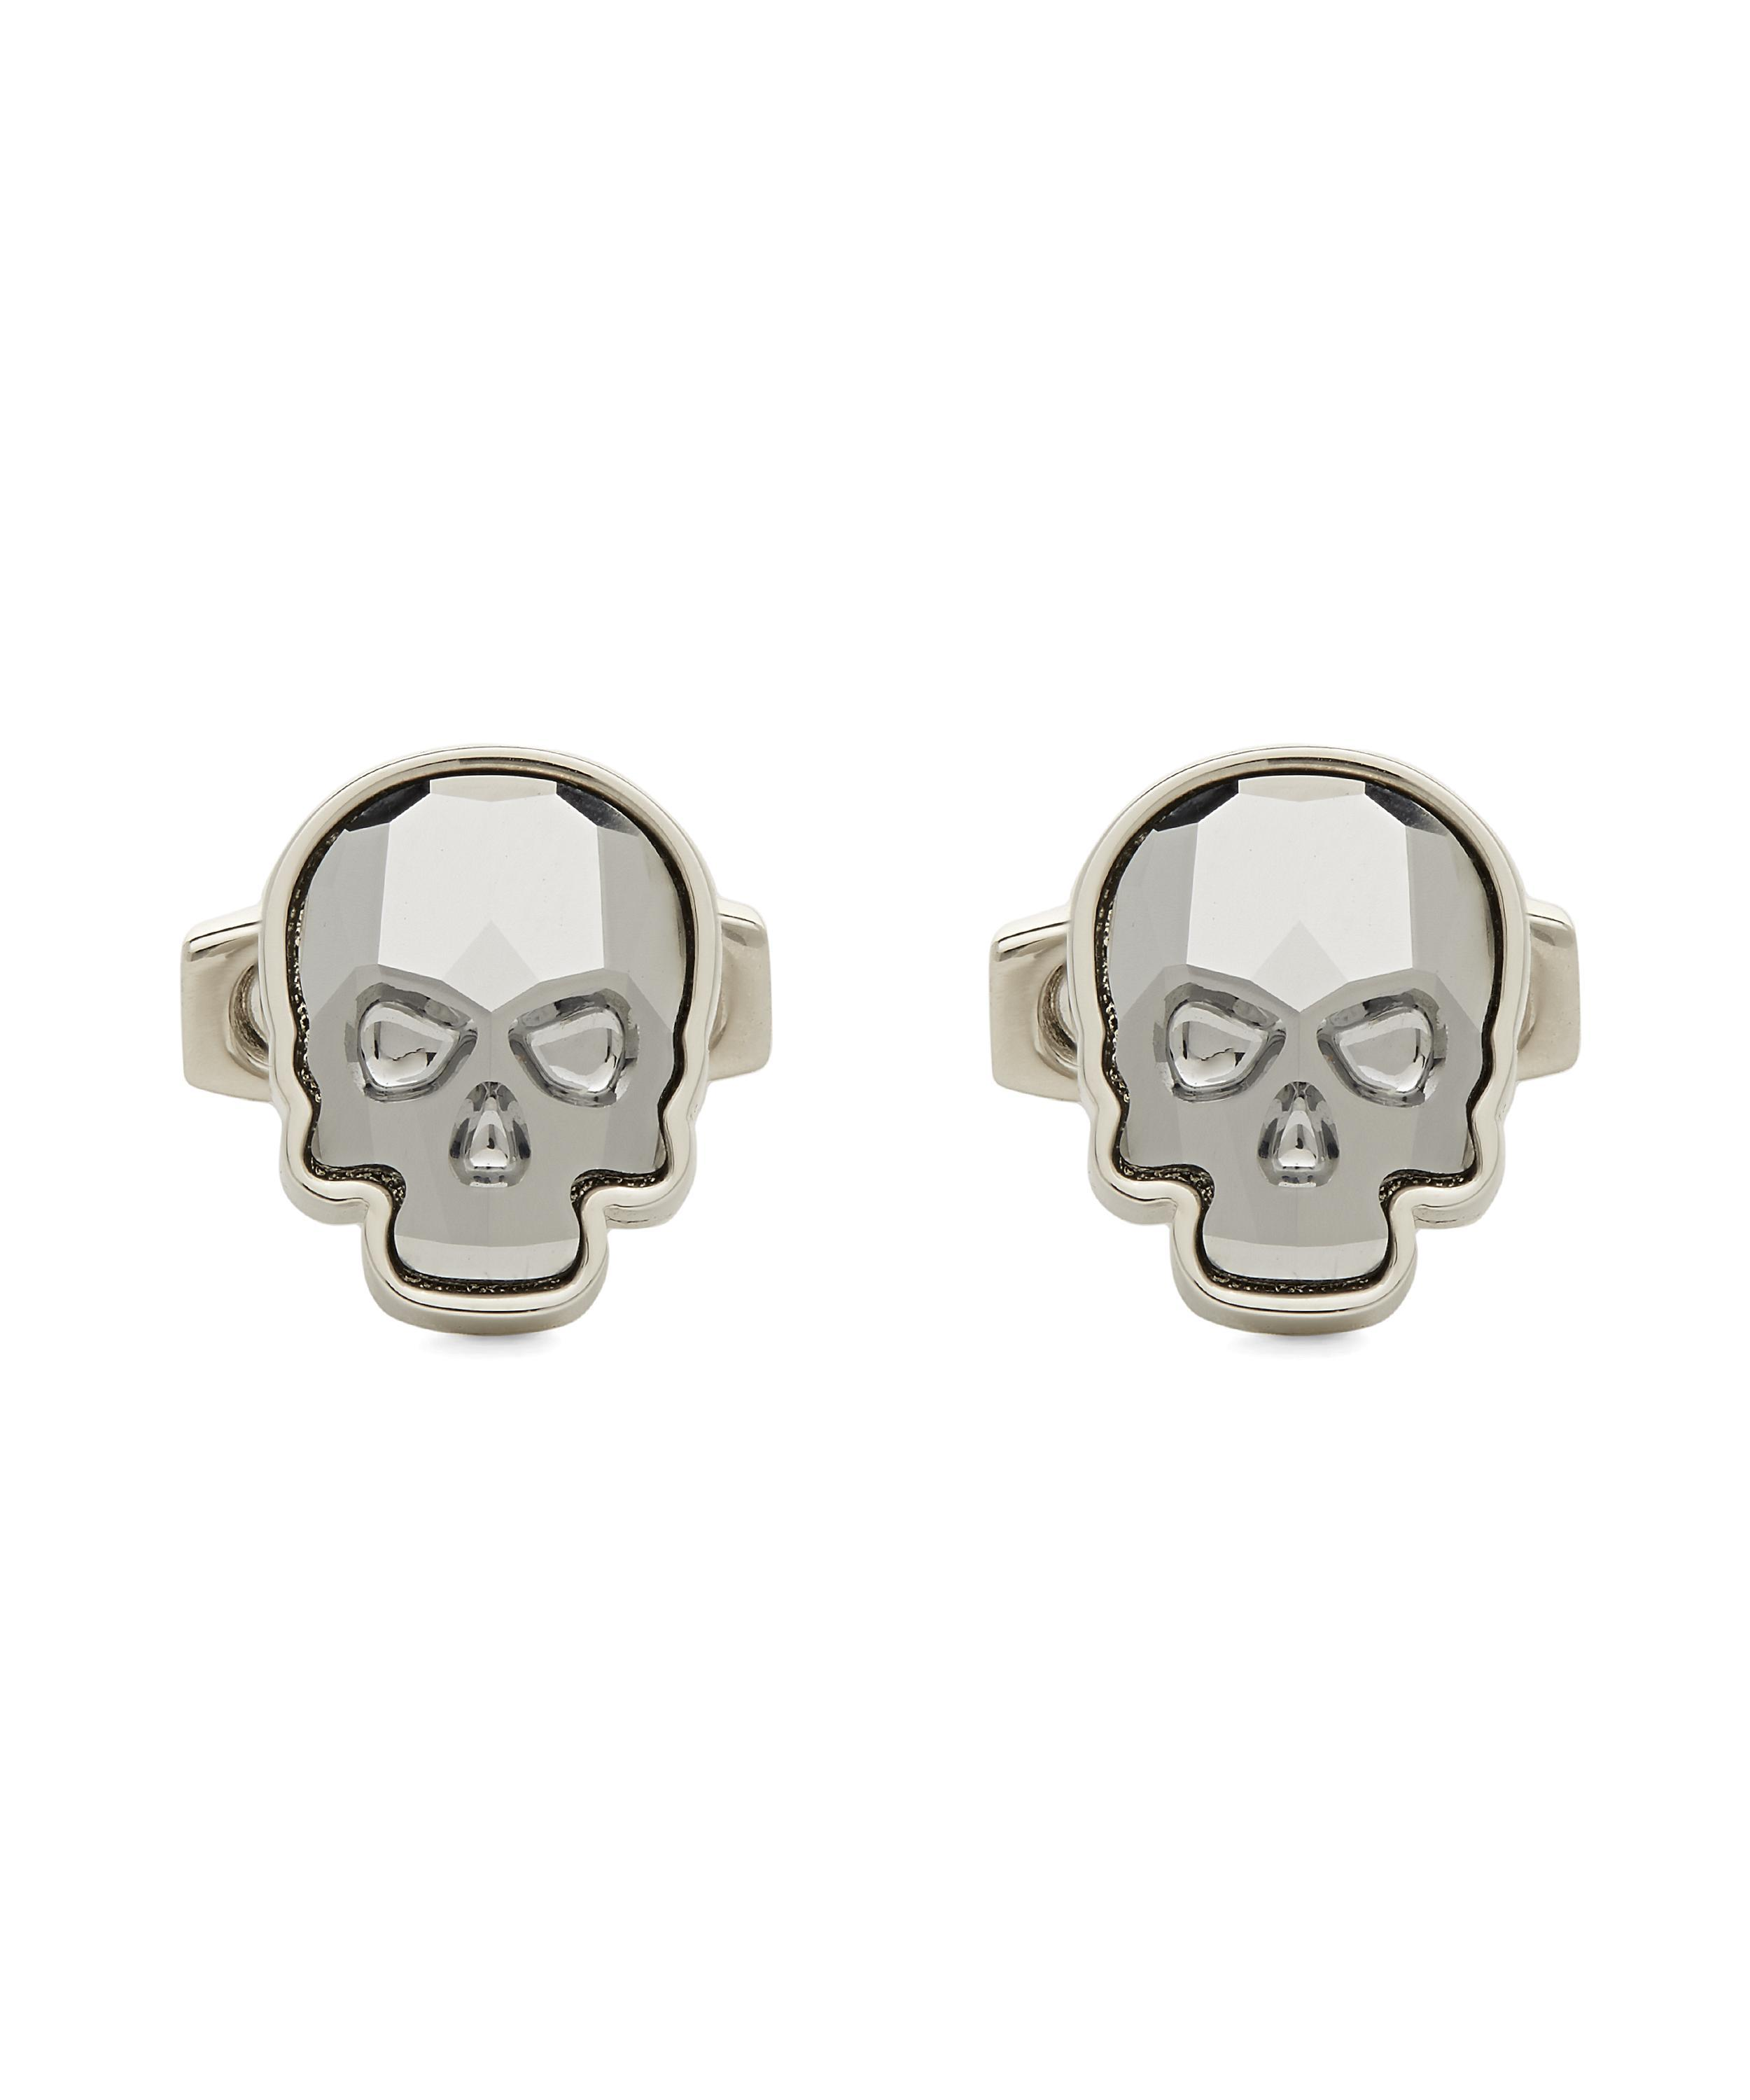 9532e4f08 Simon Carter Swarovski Crystal Skull Cufflinks in Metallic for Men ...